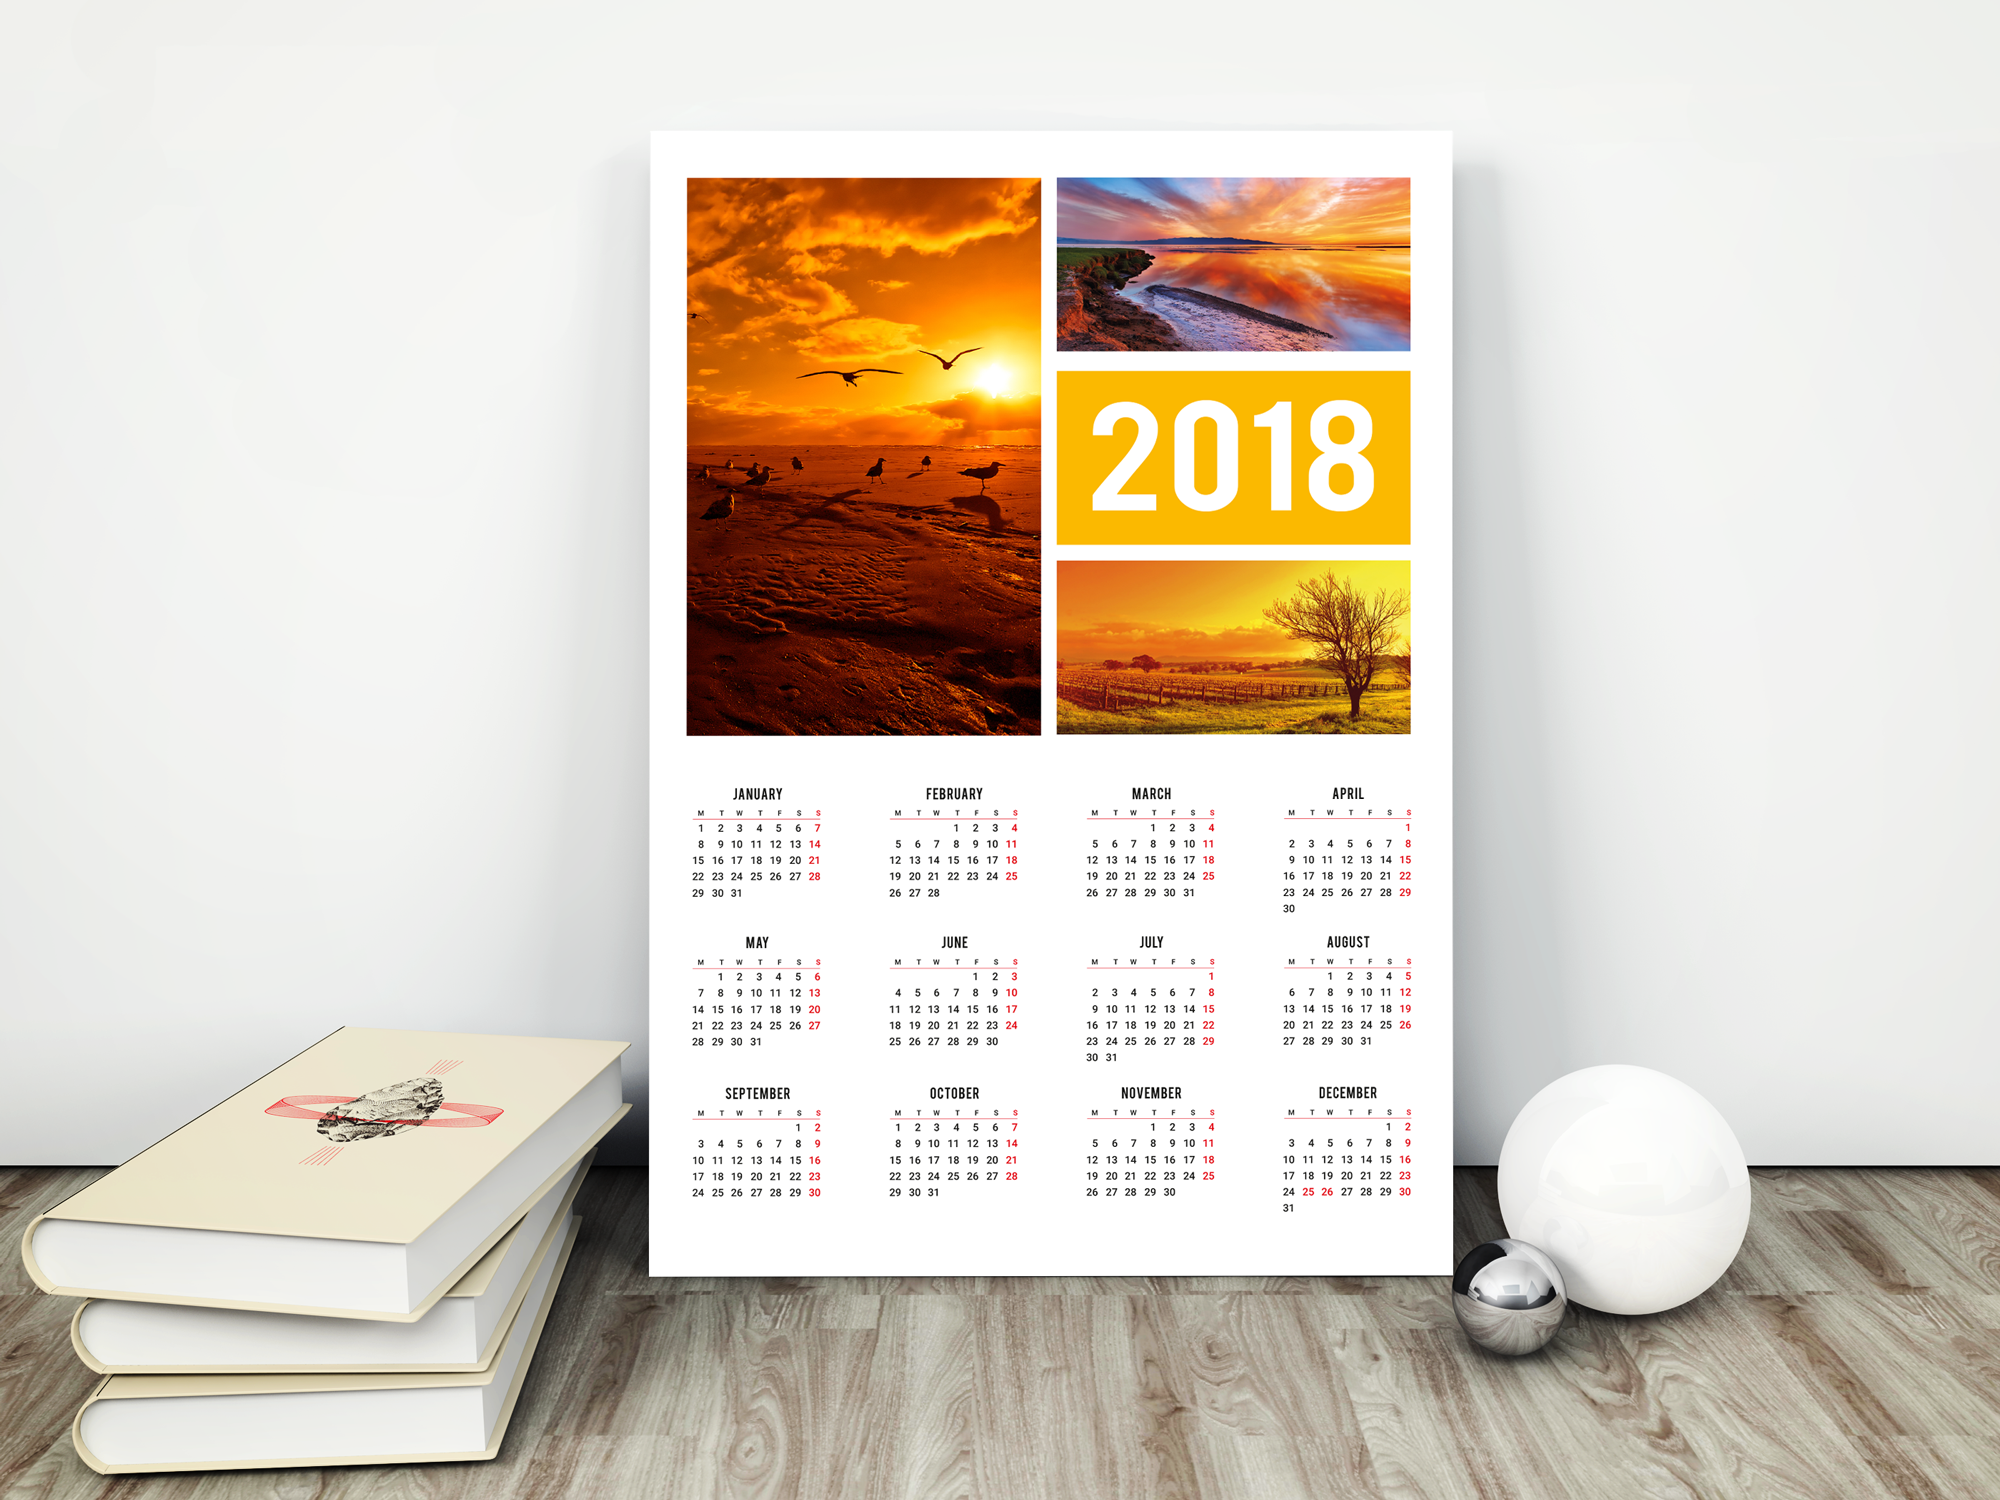 2018 Digital Calendar Template Download This Poster Wall